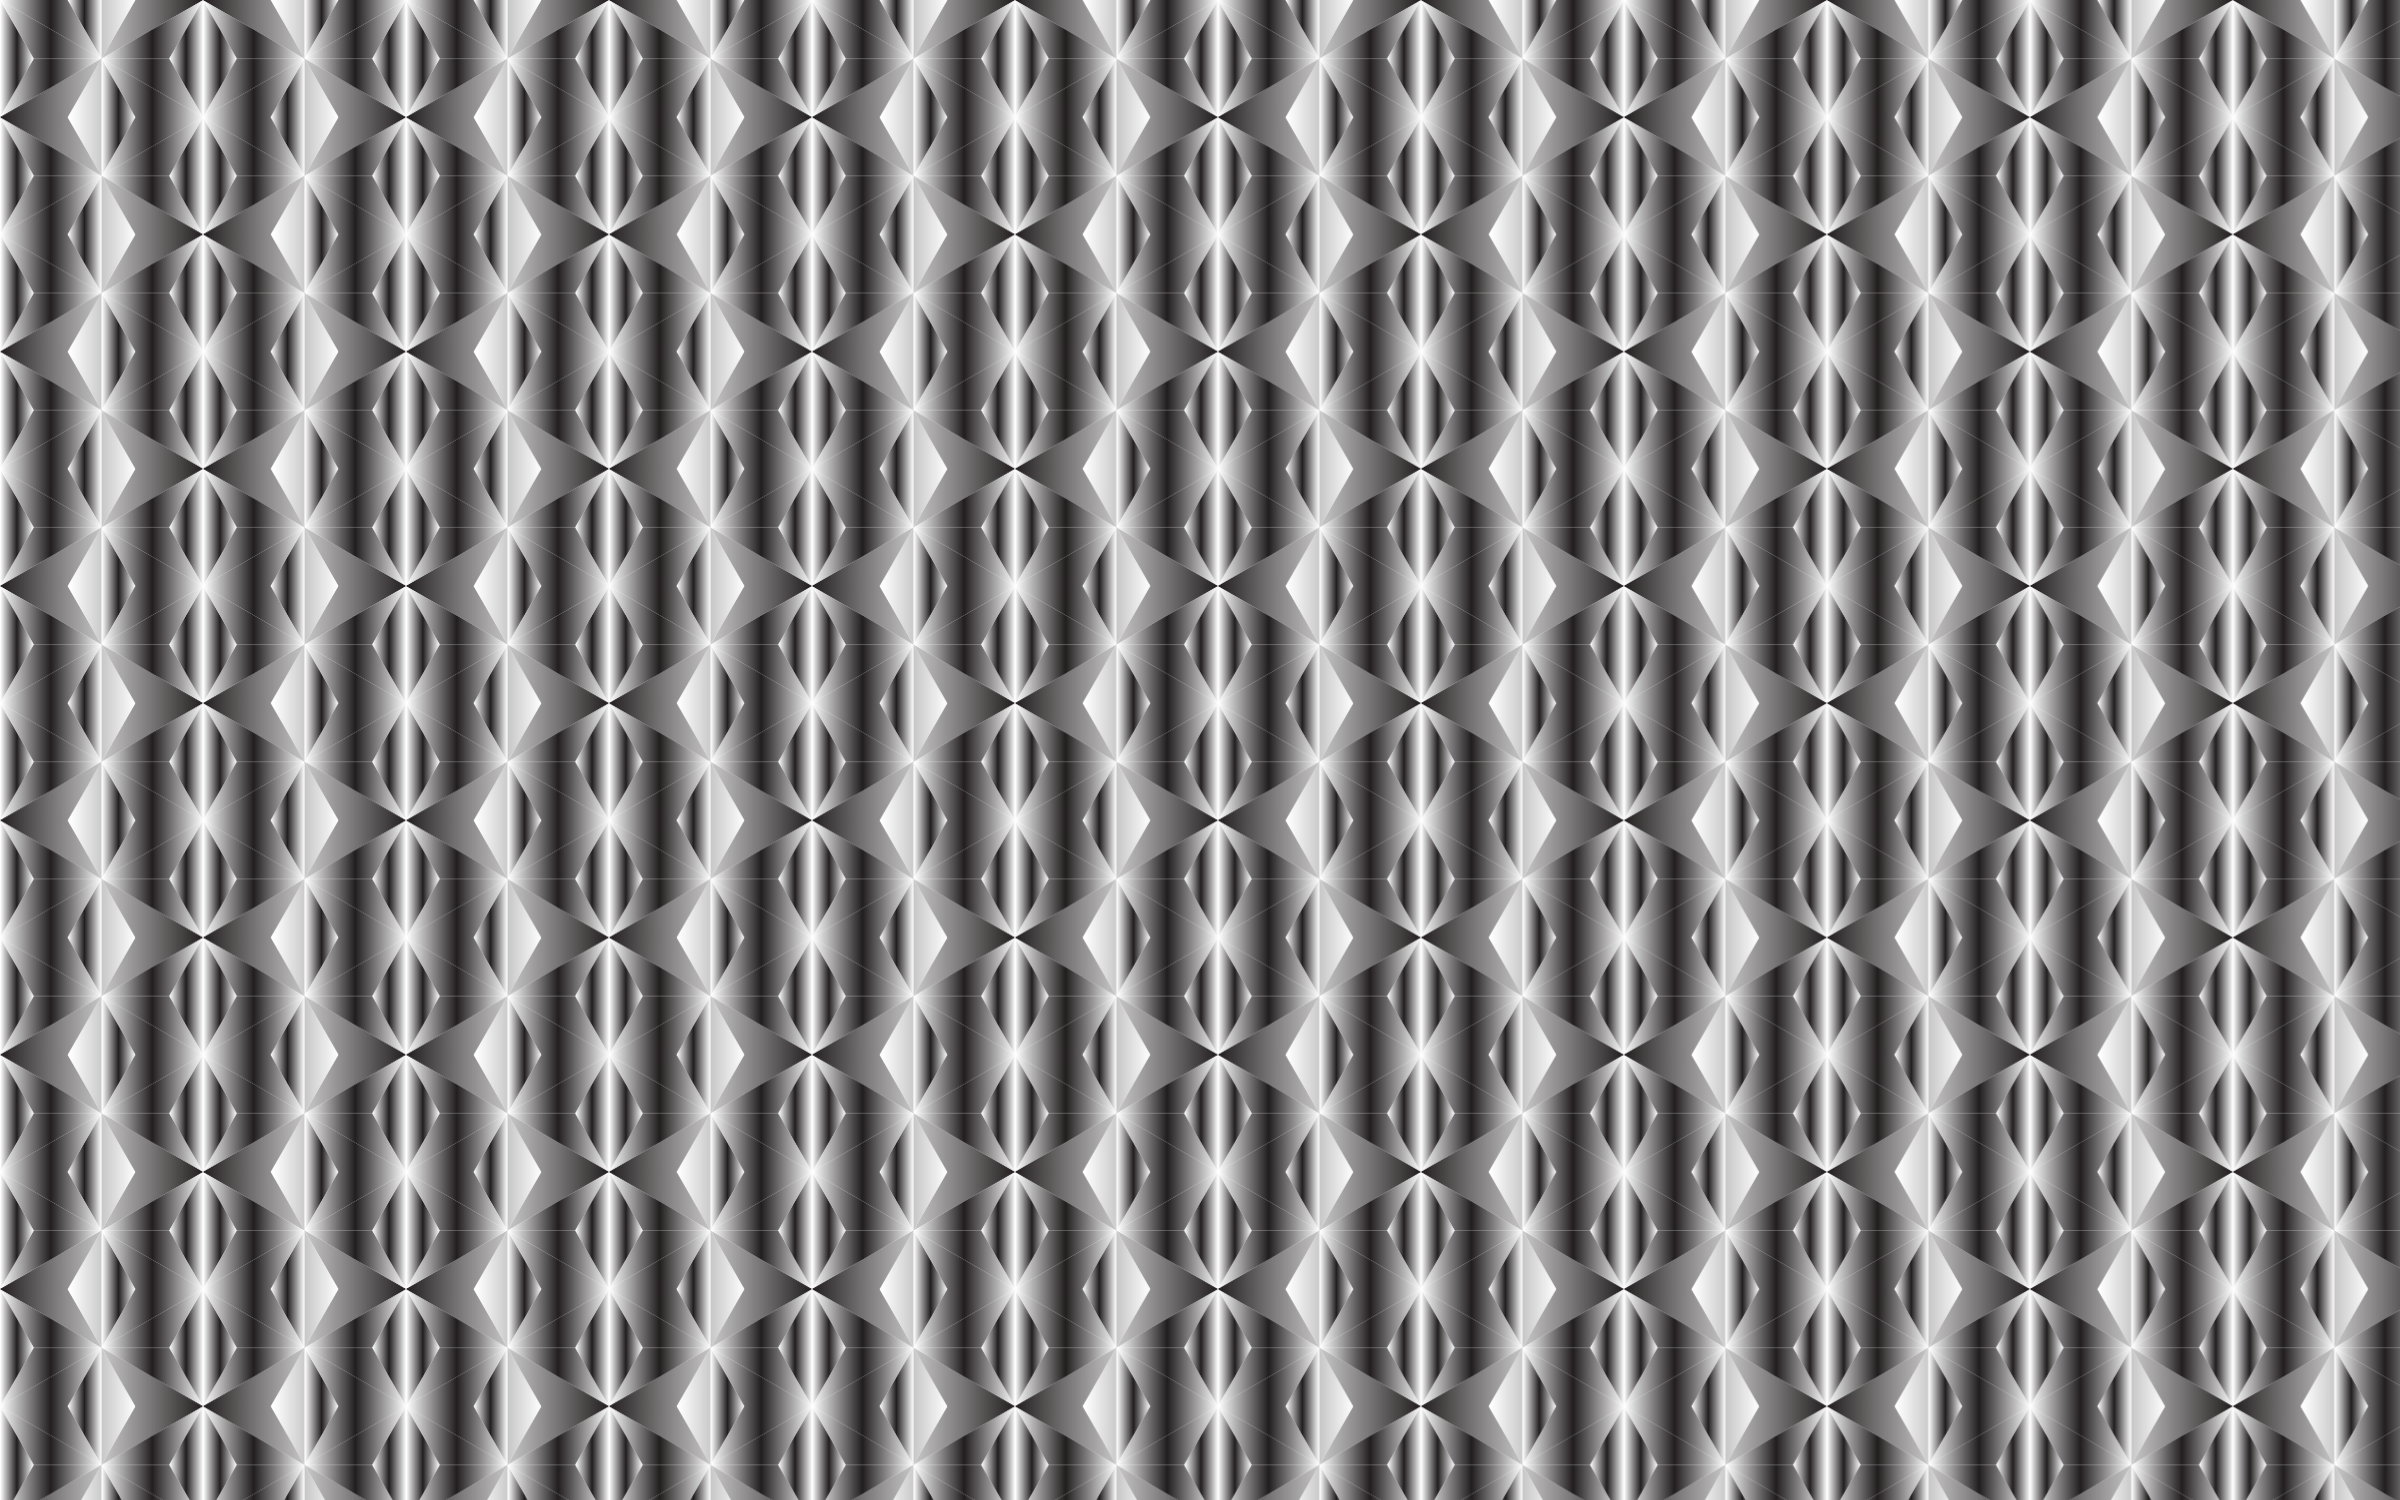 Seamless Hexagonal Diamonds Grayscale Pattern by GDJ